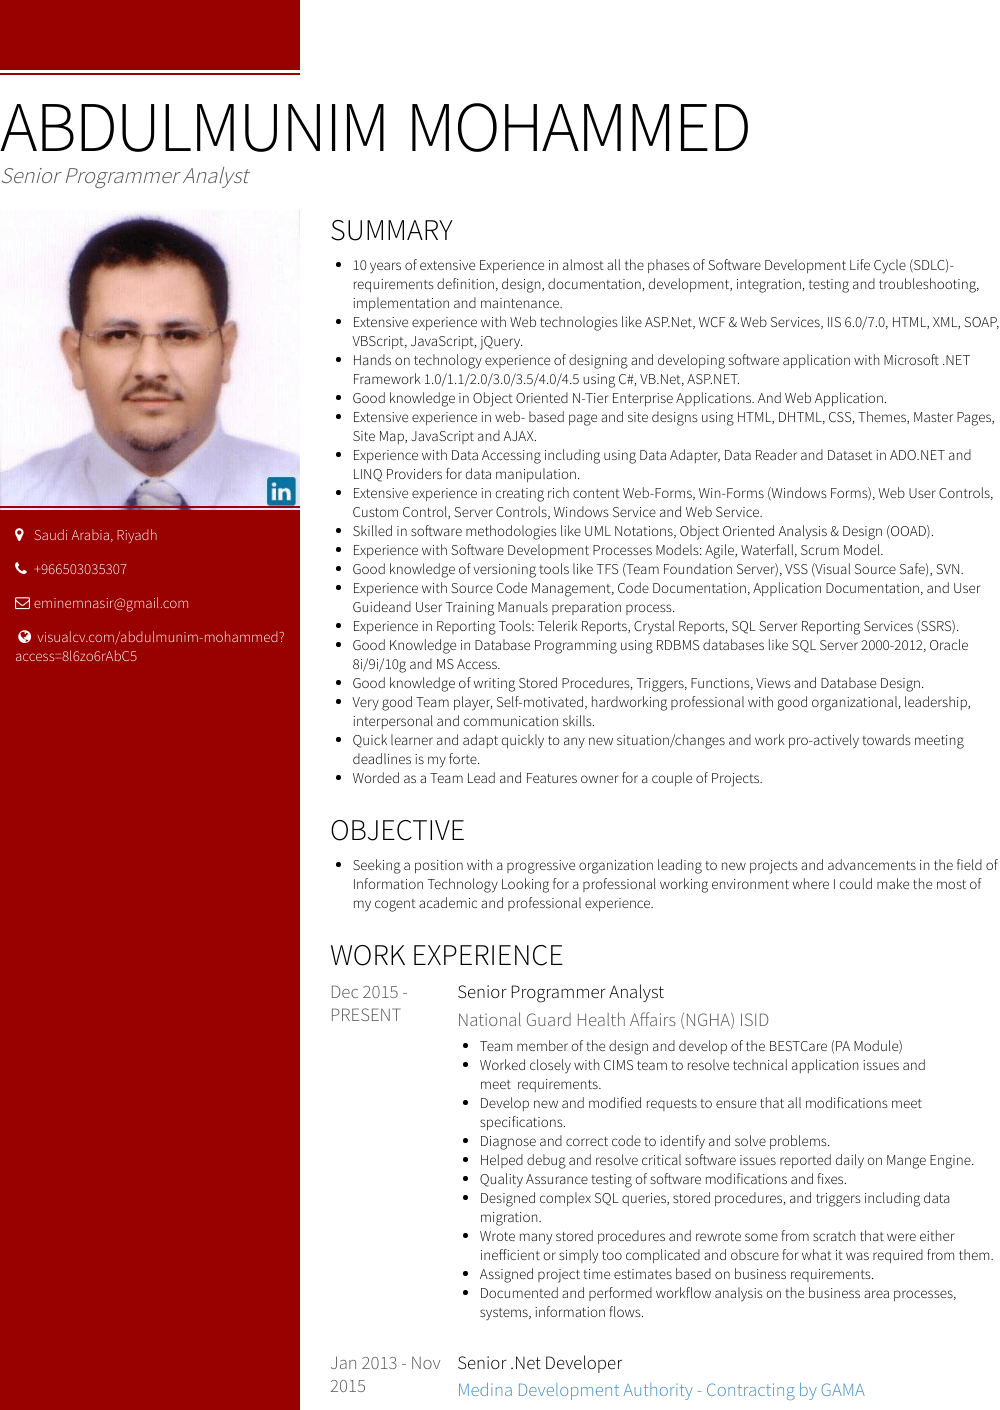 Senior Net Developer Resume Samples And Templates Visualcv